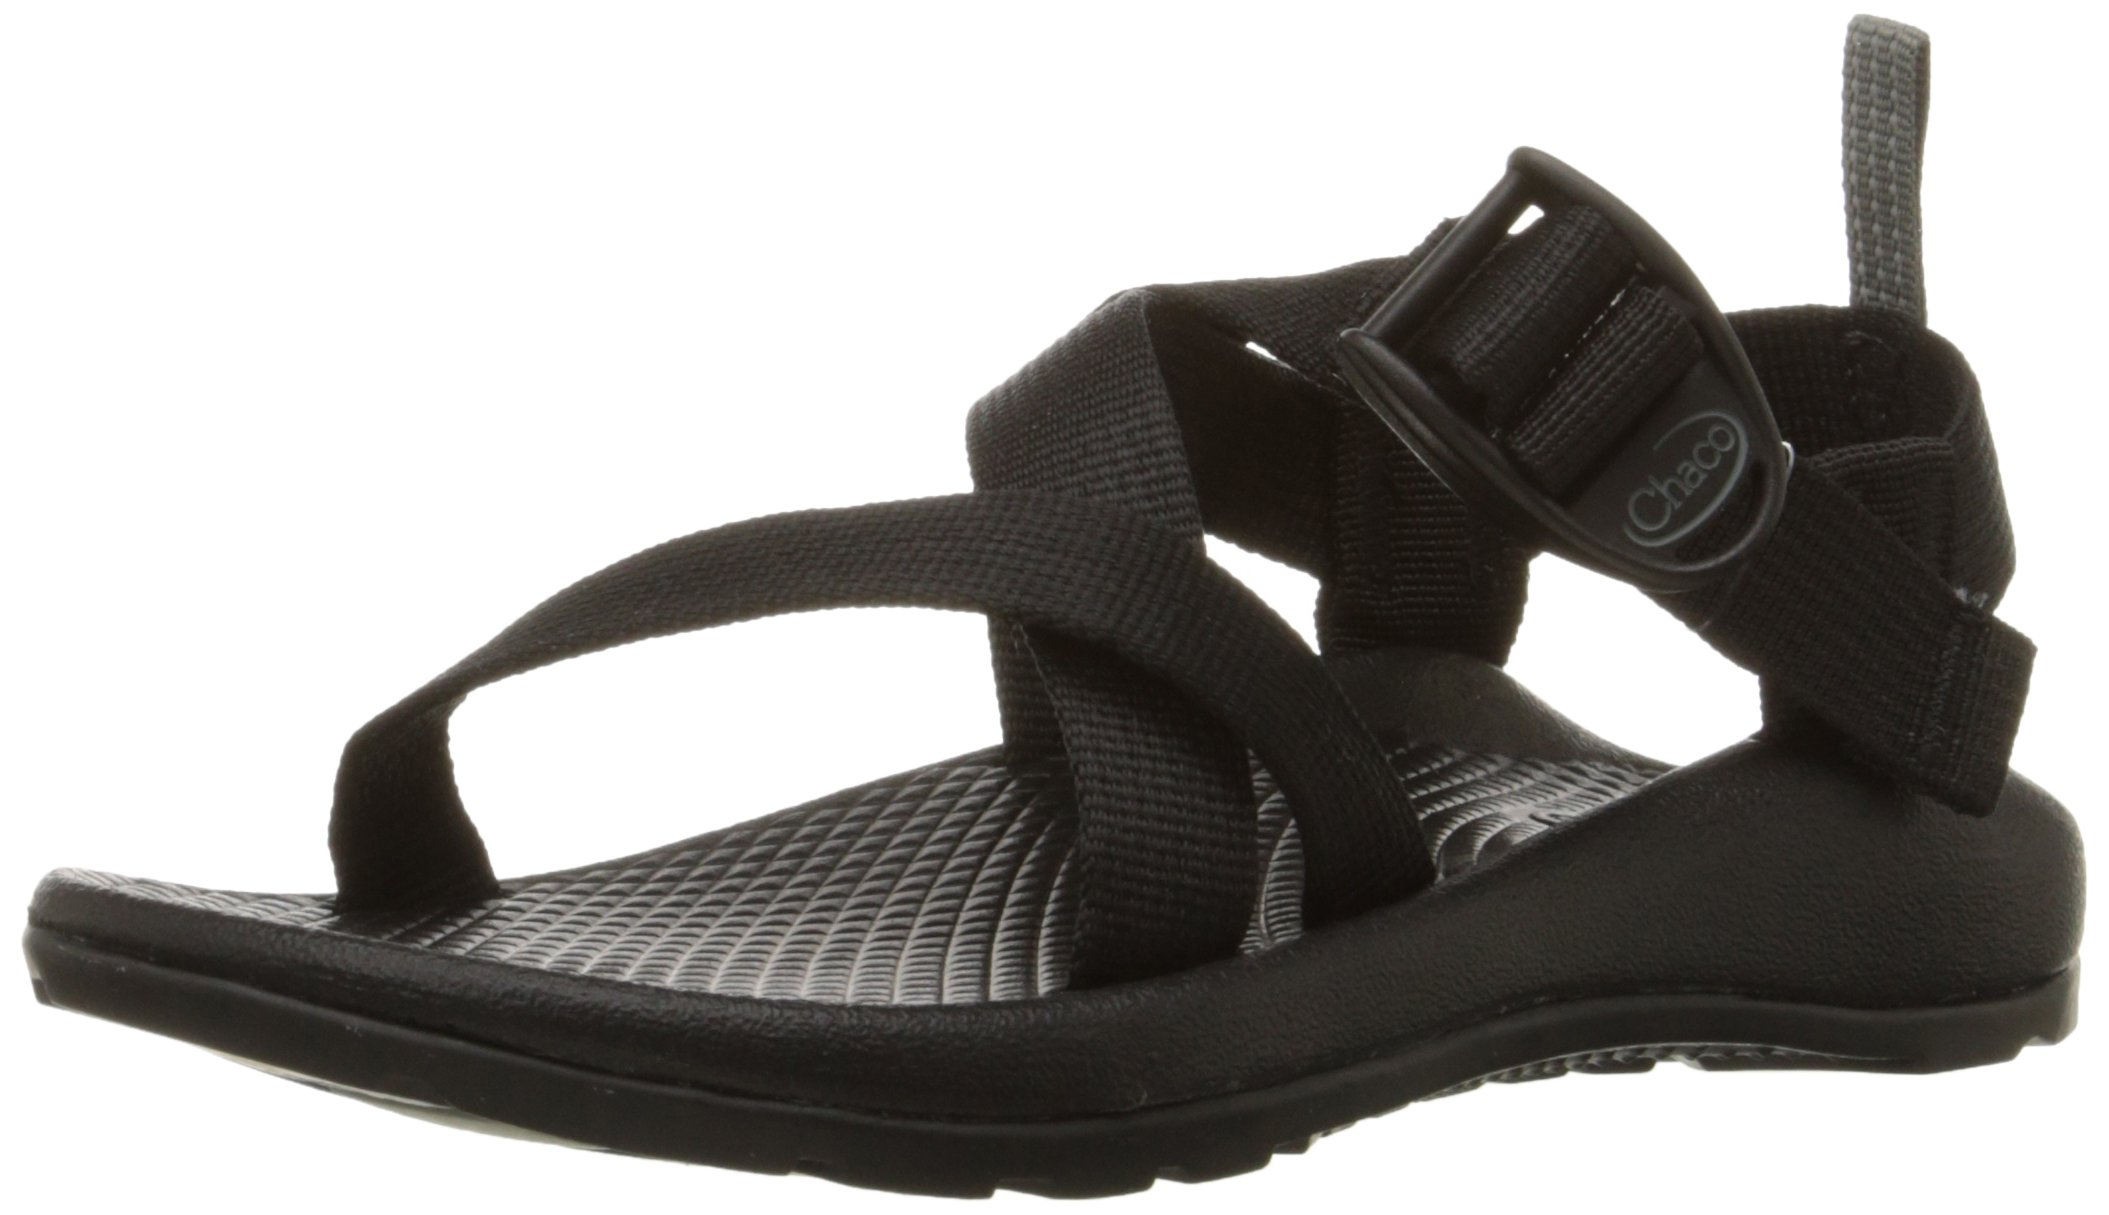 Chaco Z1 Ecotread Dress Sandal (Toddler/Little Kid/Big Kid),Black,6 M US Big Kid by Chaco